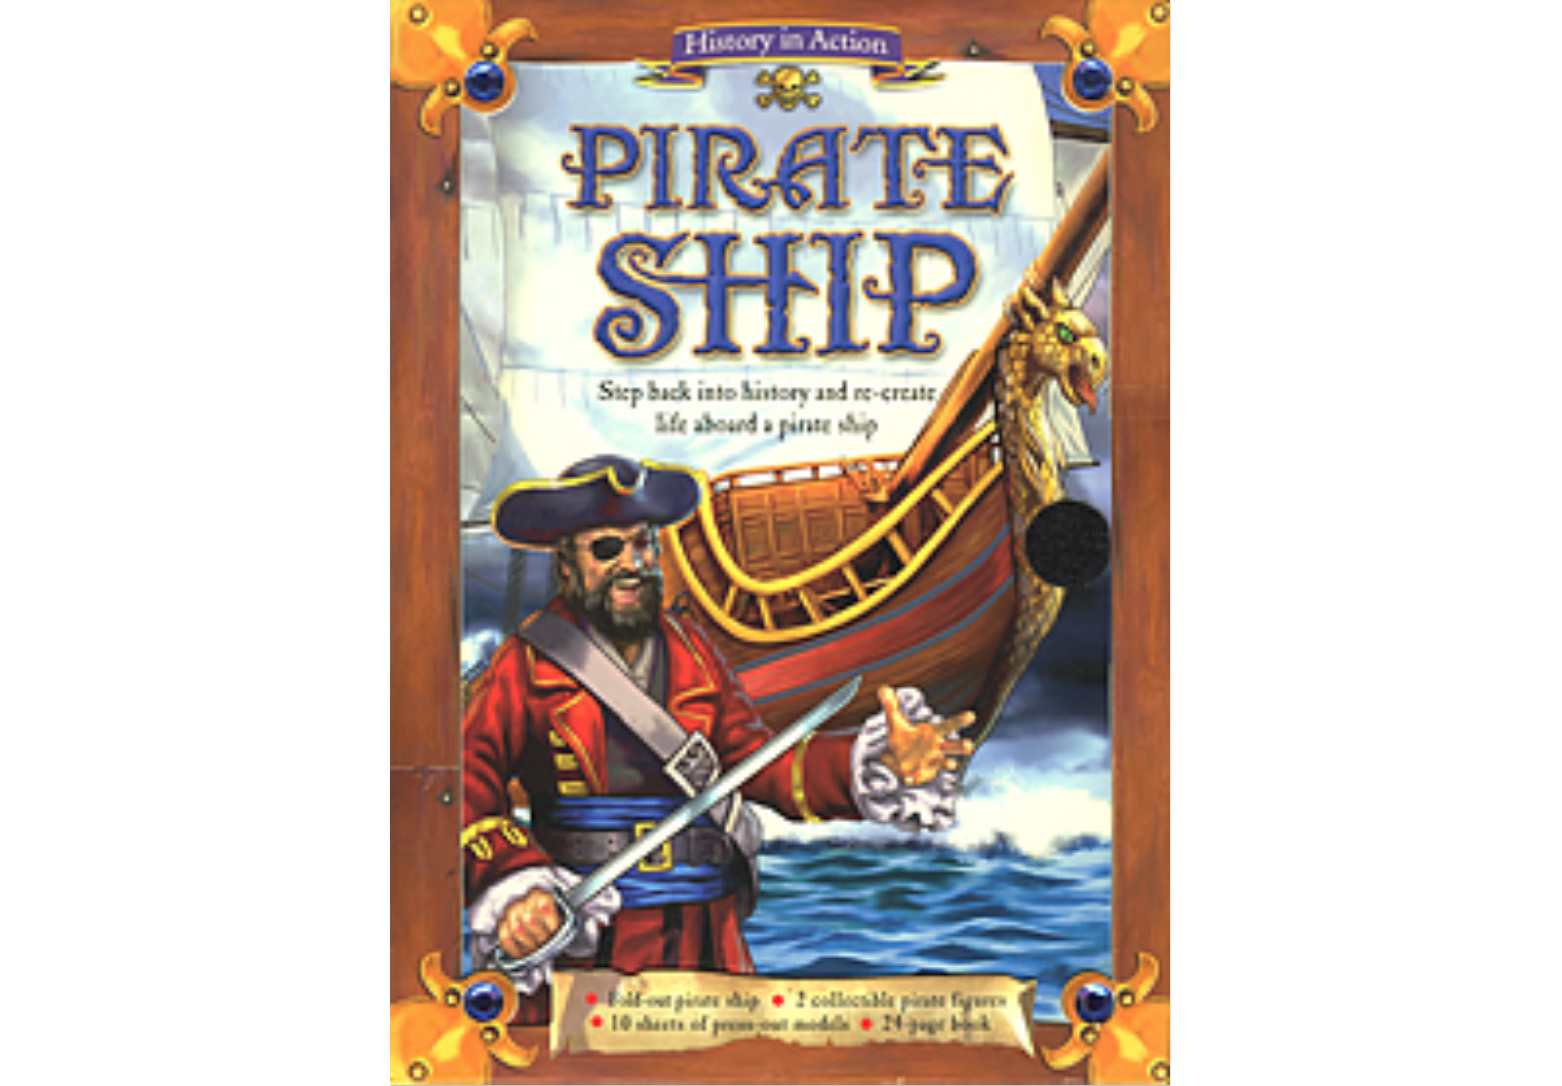 2 pirate cover copy